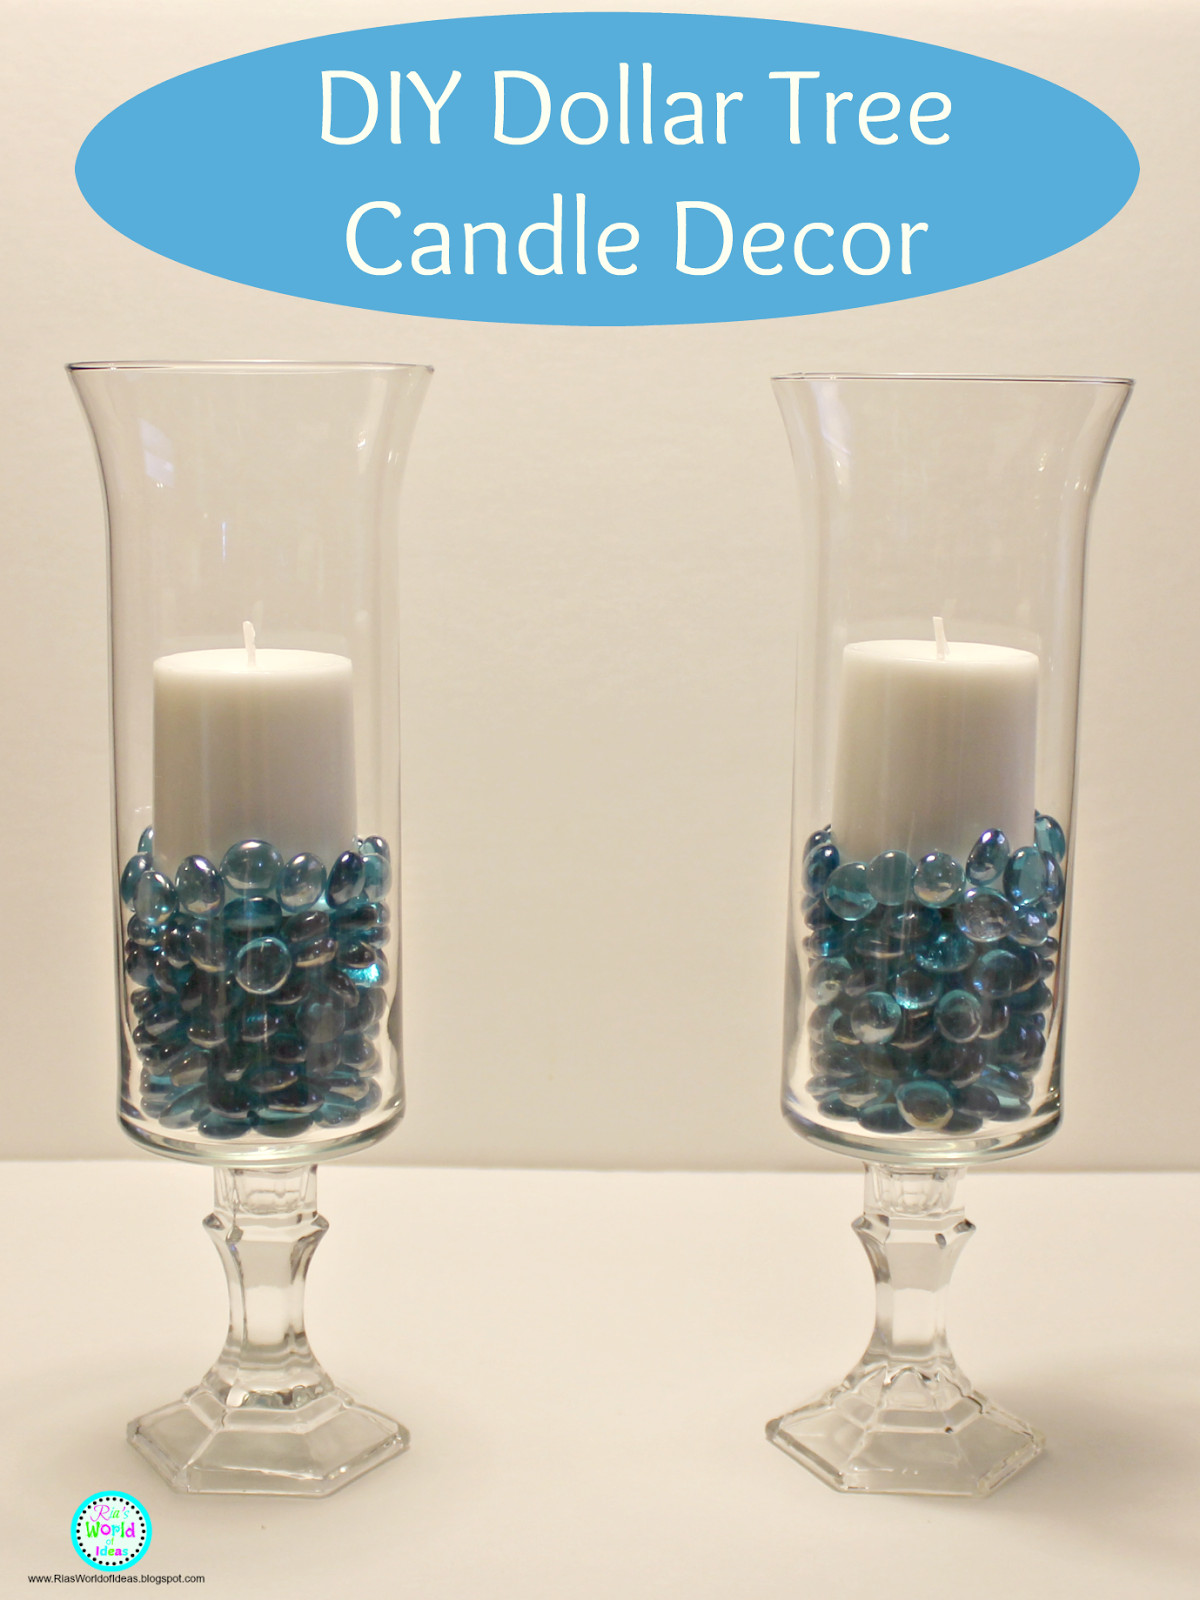 Best ideas about DIY Dollar Tree . Save or Pin Ria s World of Ideas DIY Dollar Tree Candle Decor Now.